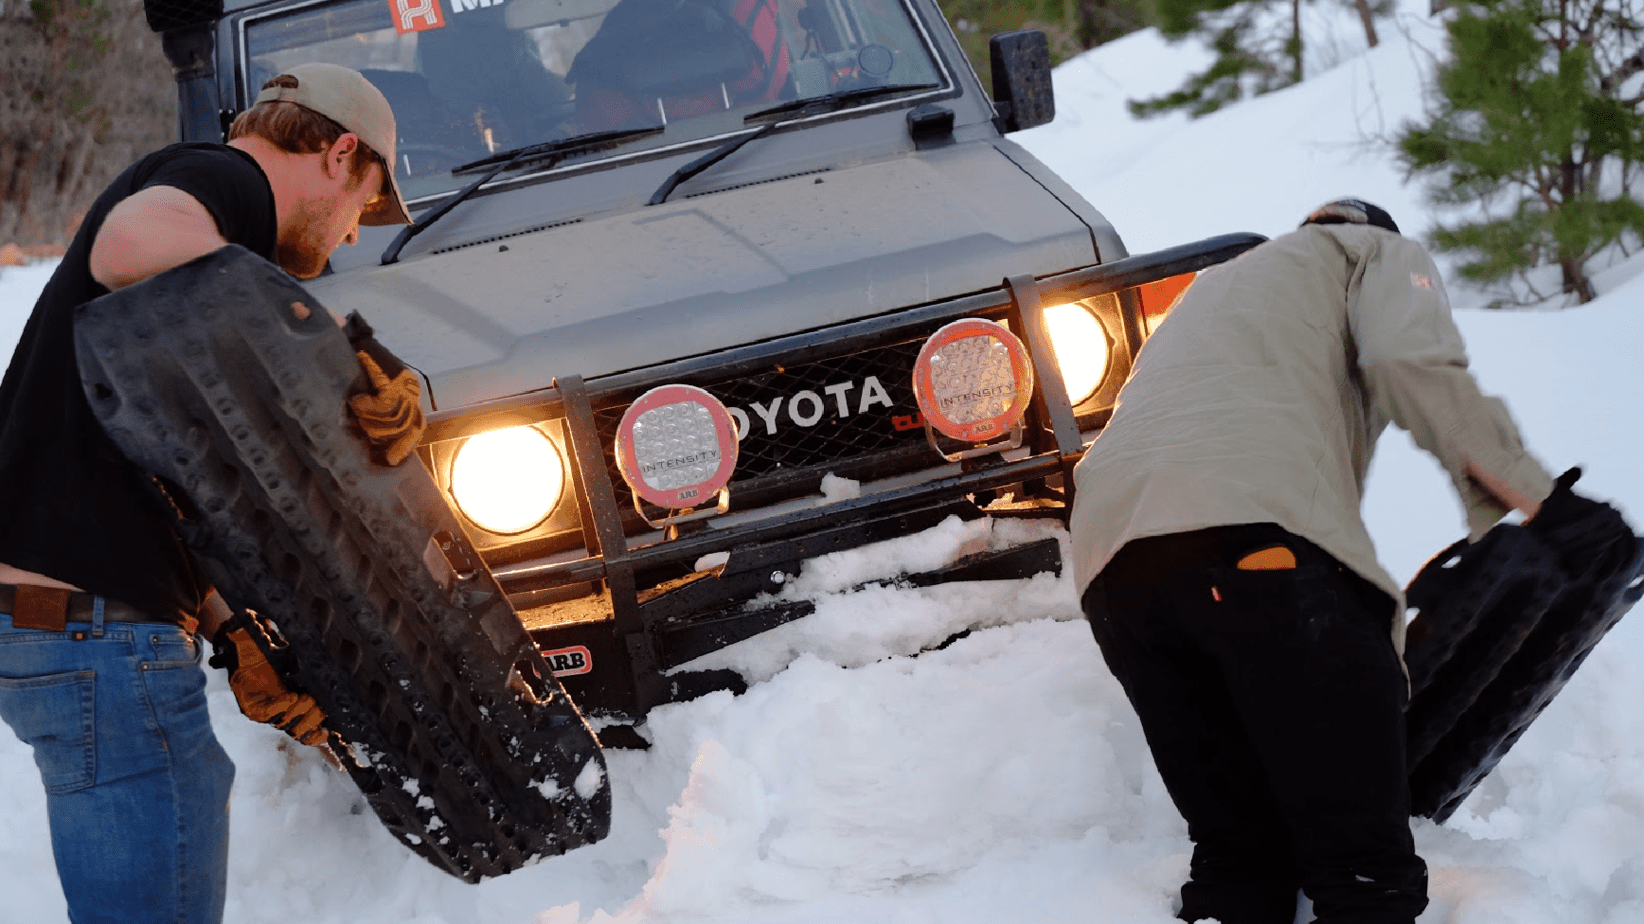 Buyer's Guide: Traction Mats